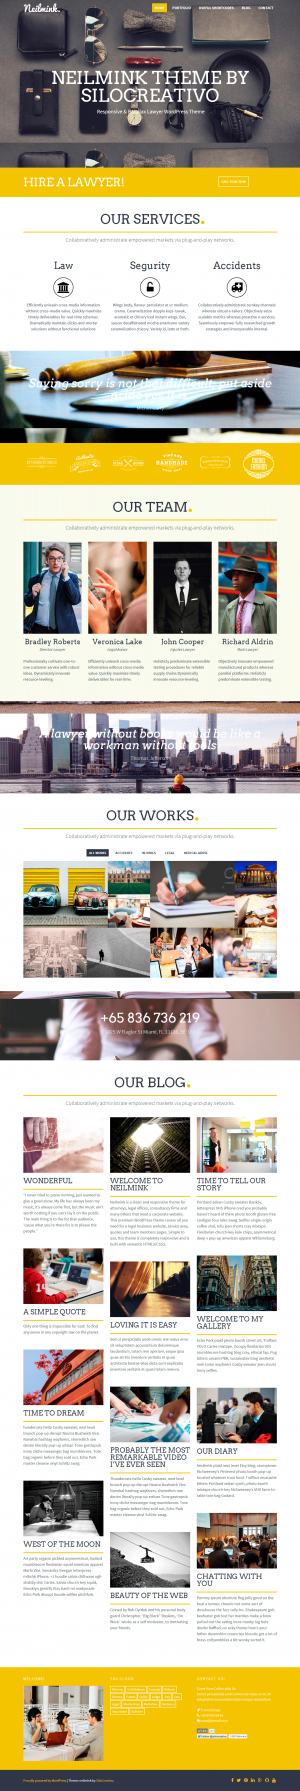 Neilmink – Responsive & Parallax Lawyer WordPress Theme